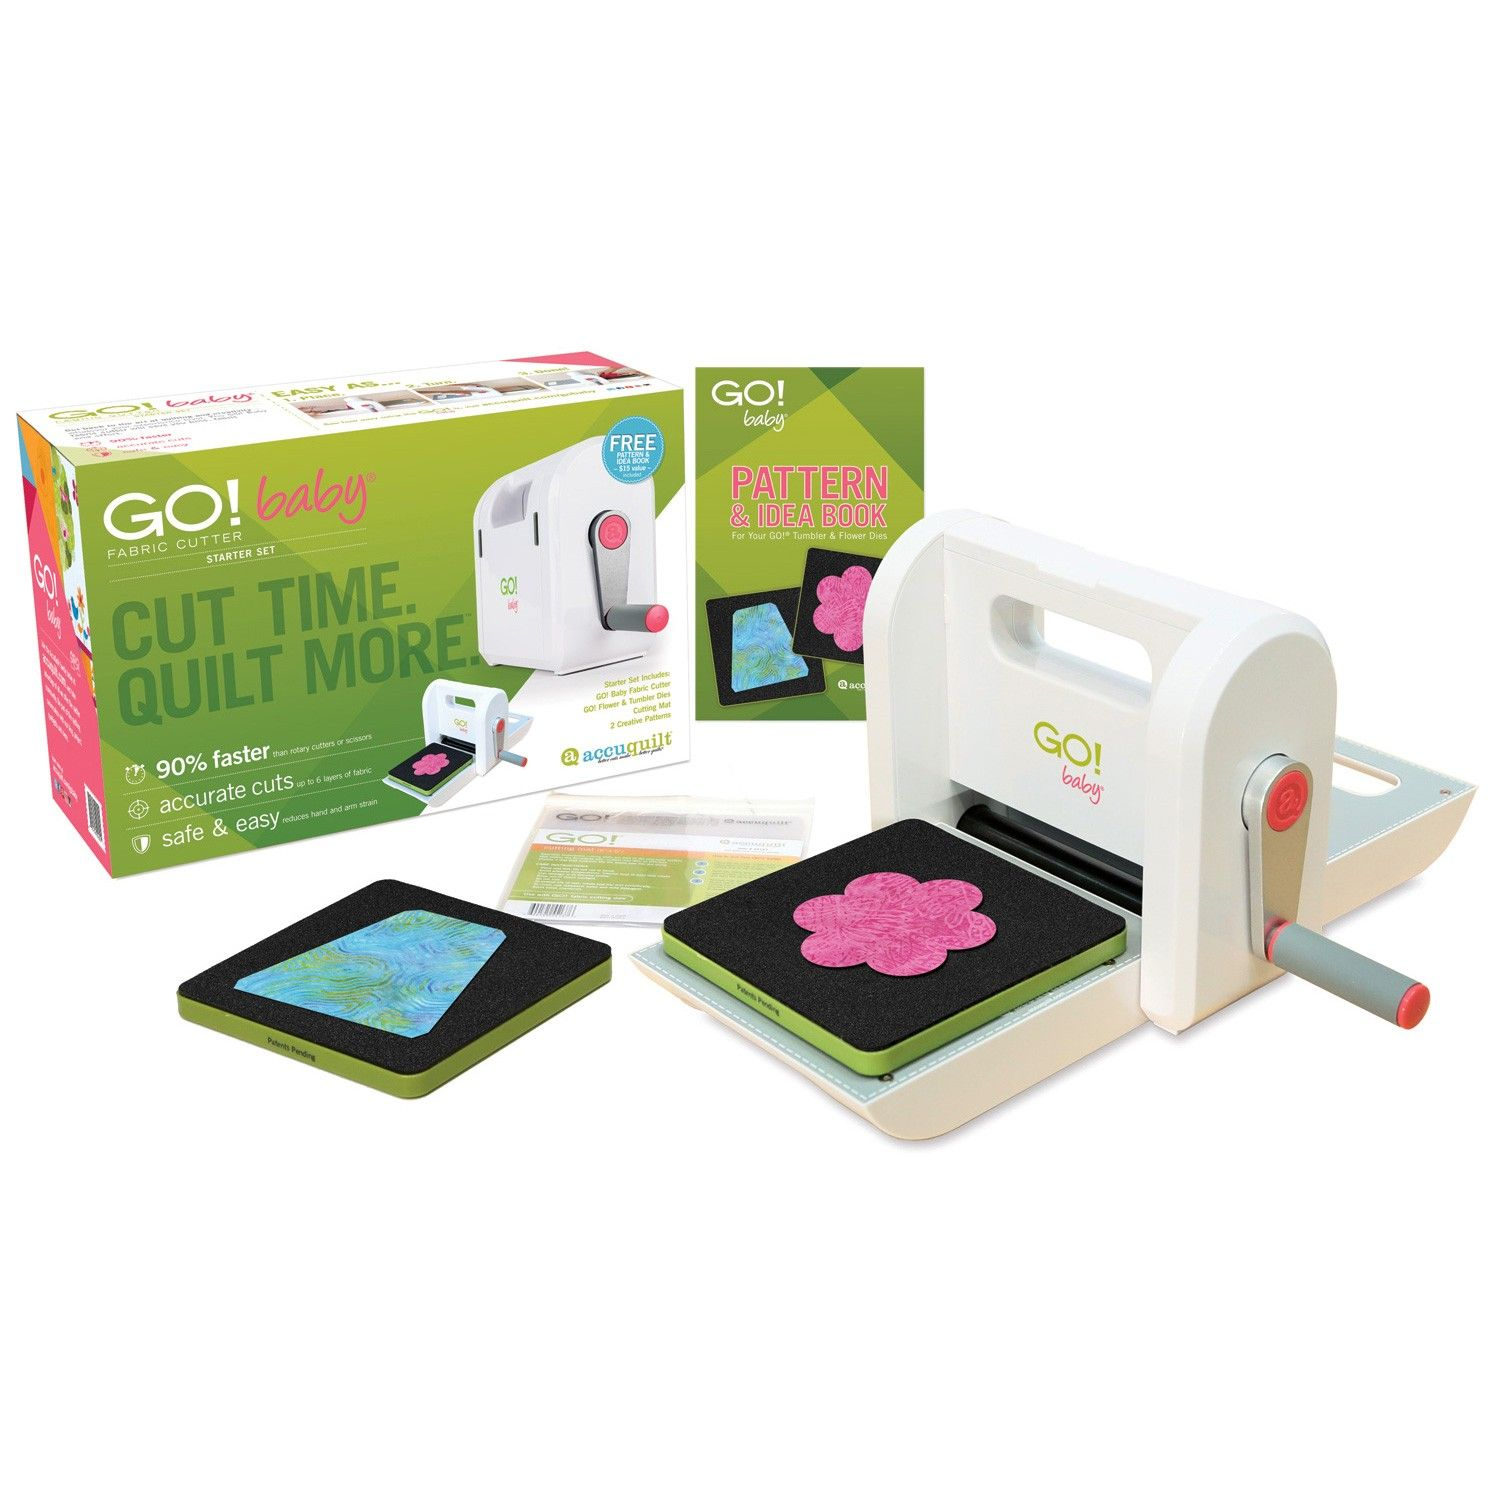 The new GO! Baby Fabric Cutter Starter Set saves you time cutting ... : cutting fabric for quilting - Adamdwight.com